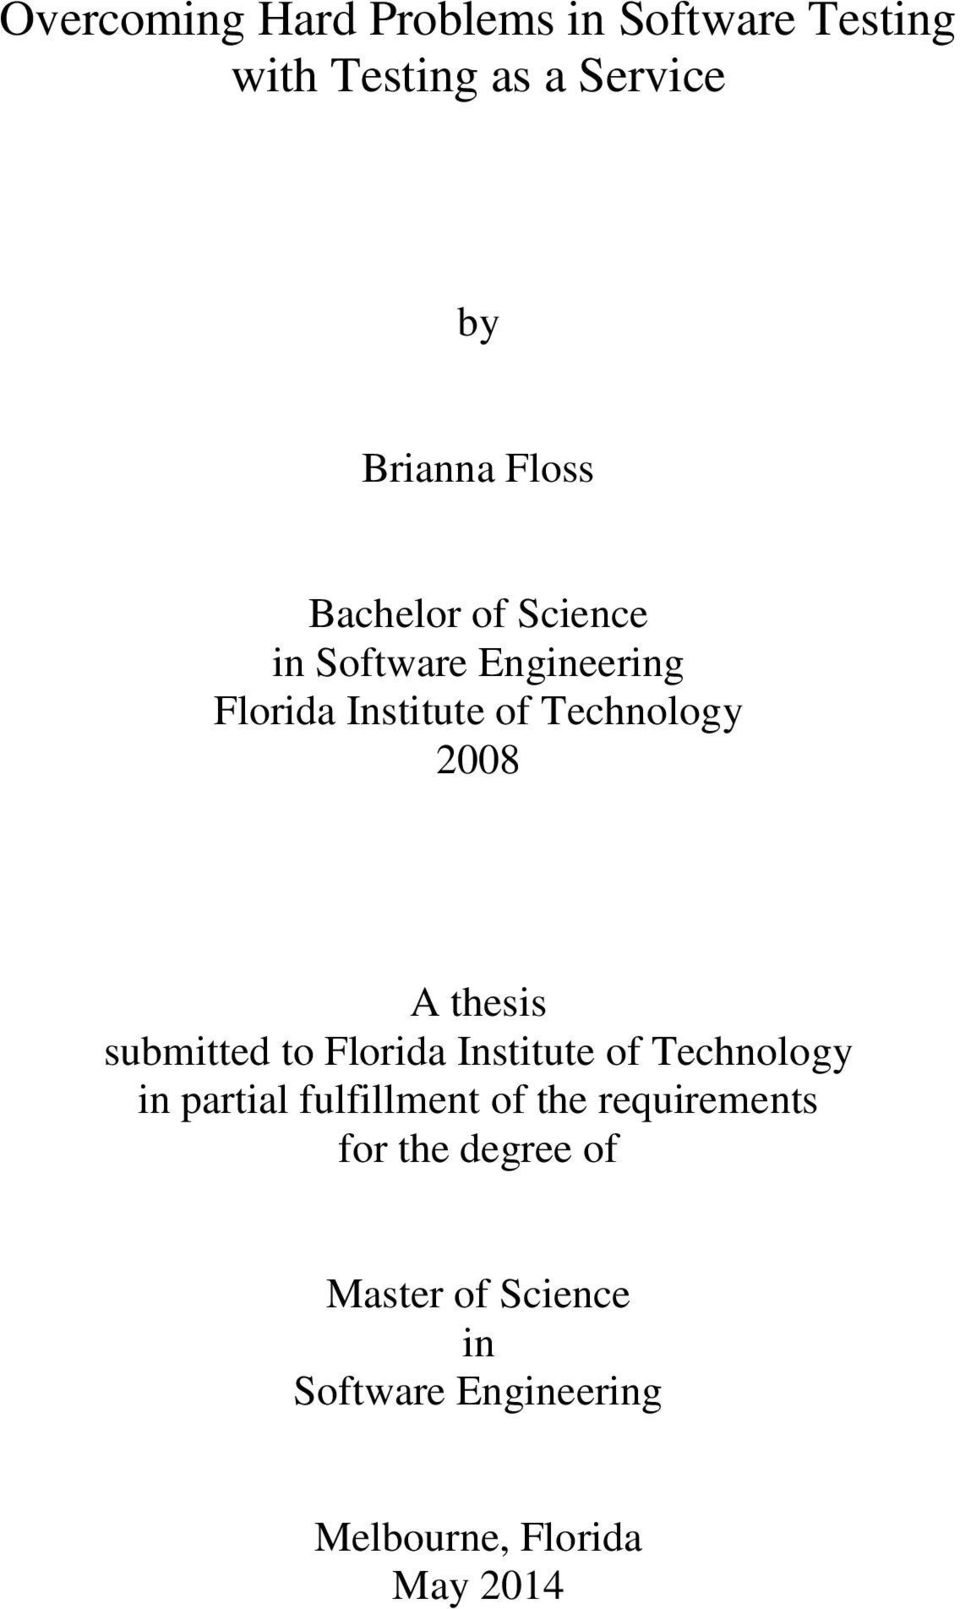 thesis submitted to Florida Institute of Technology in partial fulfillment of the